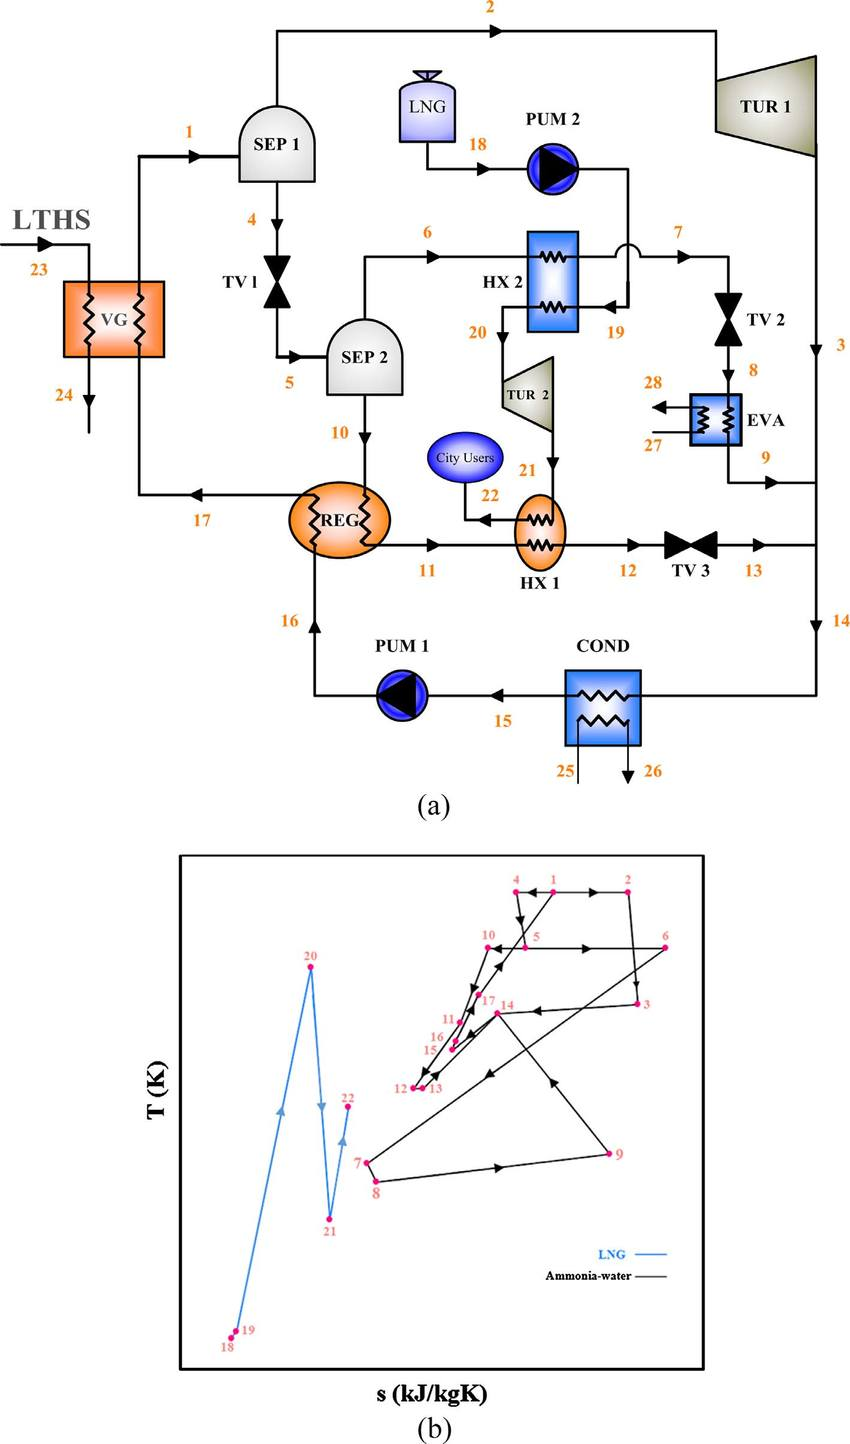 medium resolution of schematic diagram of the a combined cooling and power cycle and b